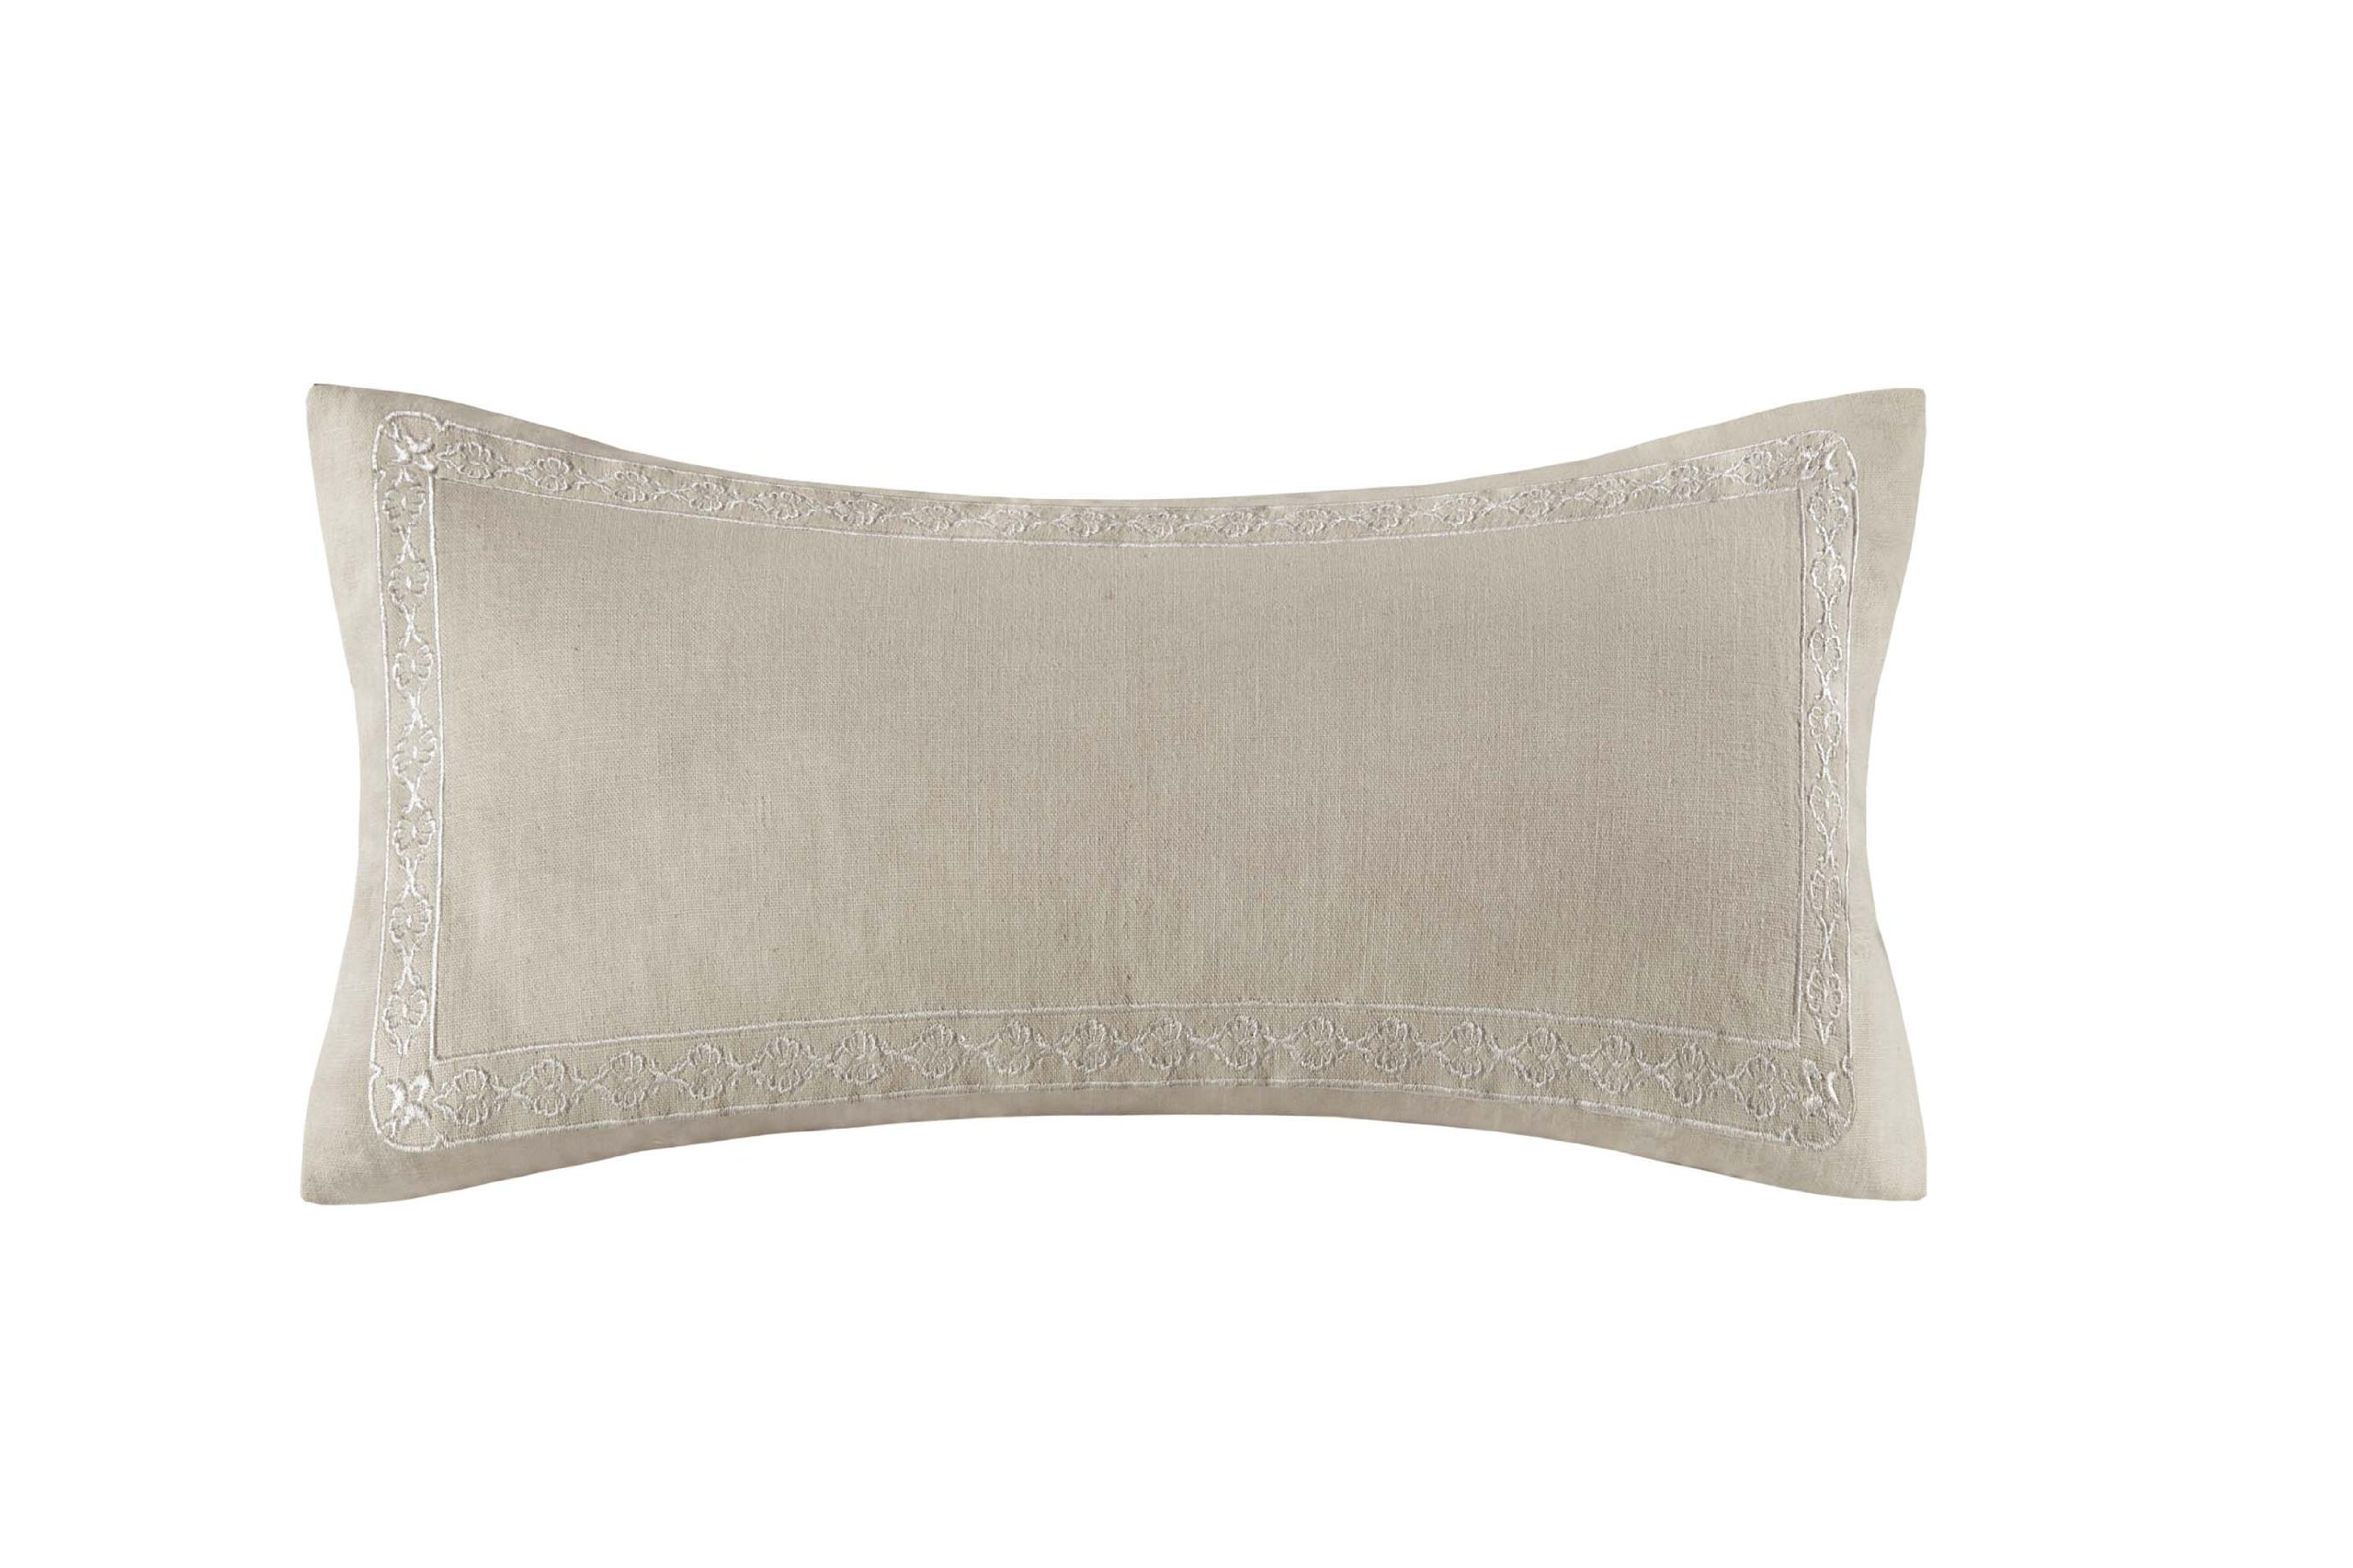 Echo Odyssey Fashion Cotton Throw Pillow, Global Inspired Embroidered Oblong Decorative Pillow, 10X20, Stone - 100% cotton faux linen fabric with embr, same embr pattern as Euro, 100% poly filling Measurements: 10-by-20-inch pillow Shell: Dry Clean; Filling: Machine Washable - living-room-soft-furnishings, living-room, decorative-pillows - 815A5c wmvL -